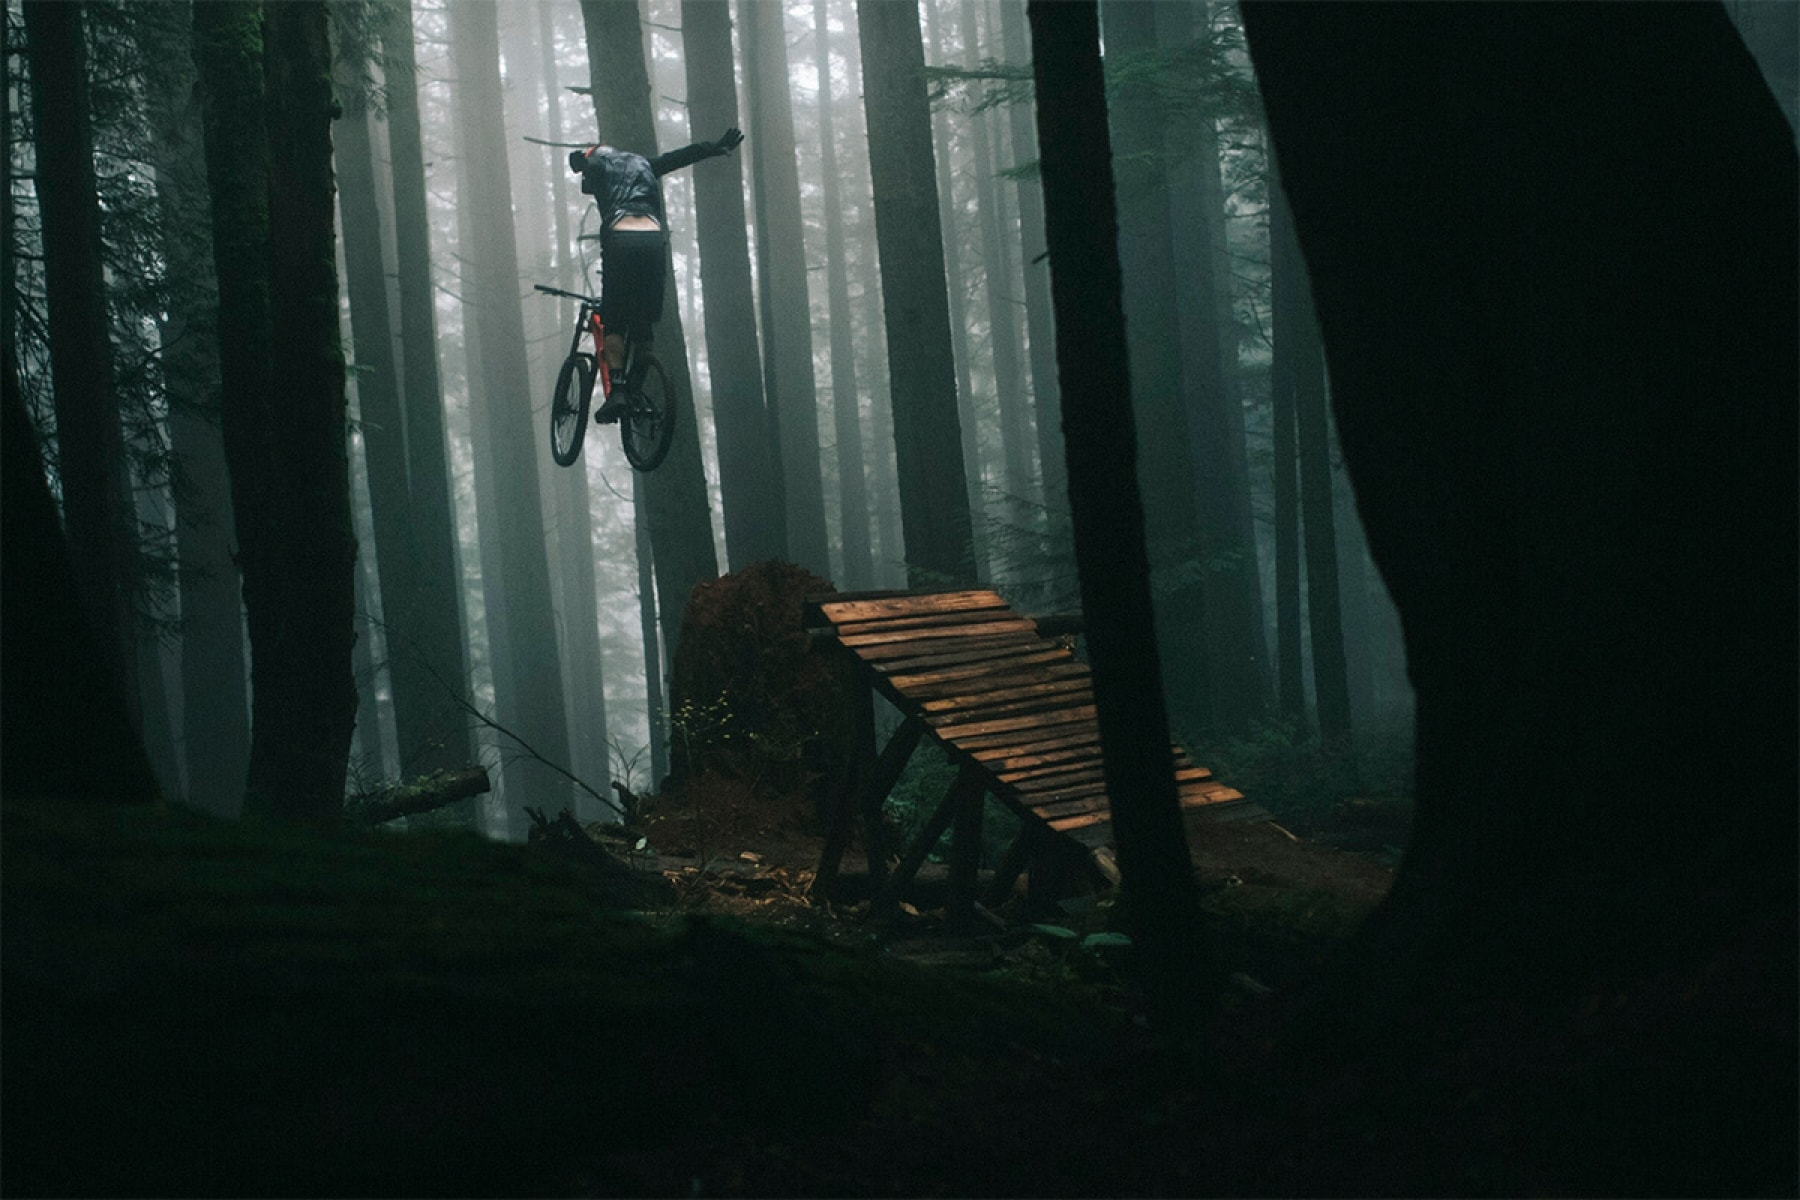 Thomas Vanderham Mountain biking